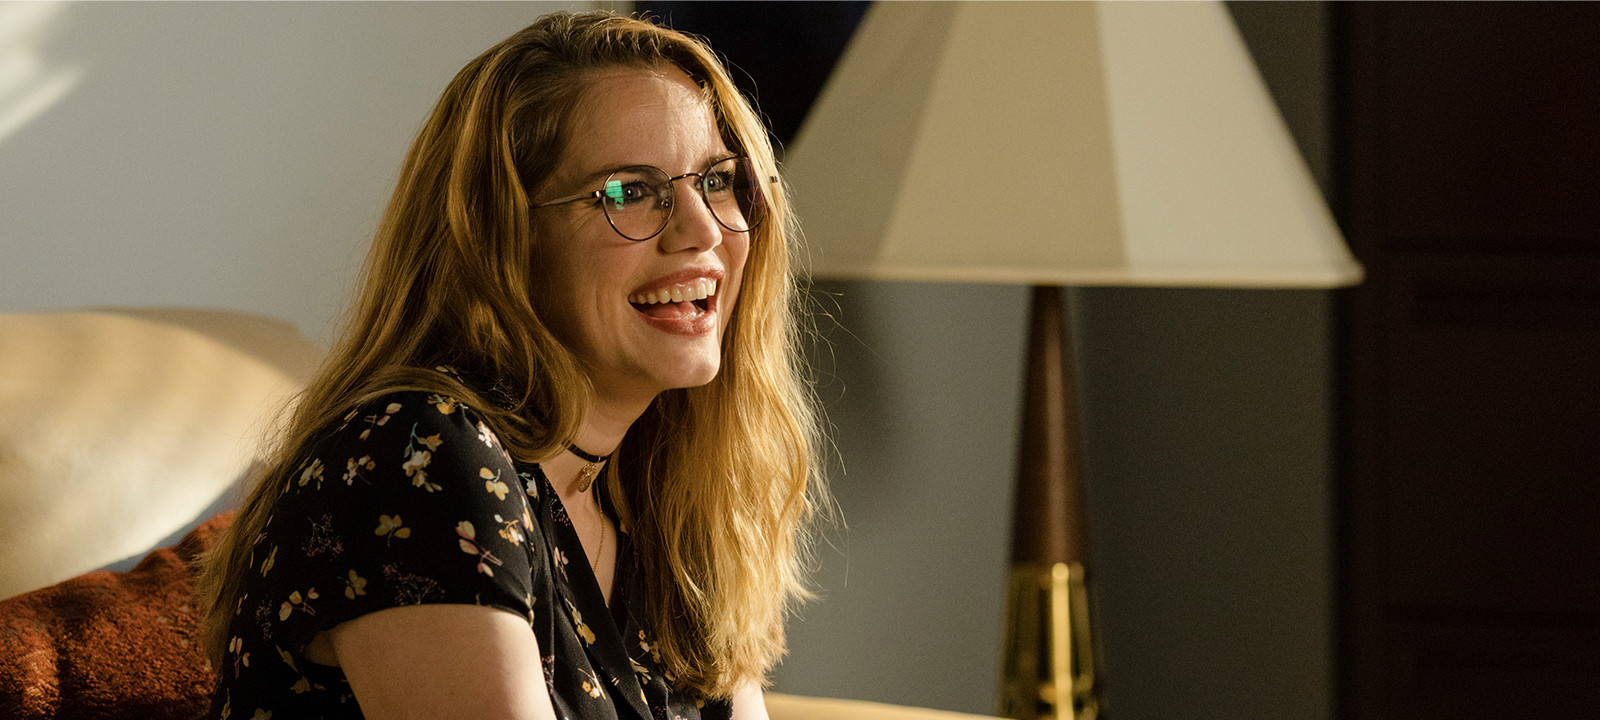 halt-and-catch-fire-episode-404-katie-chlumsky-interview-800